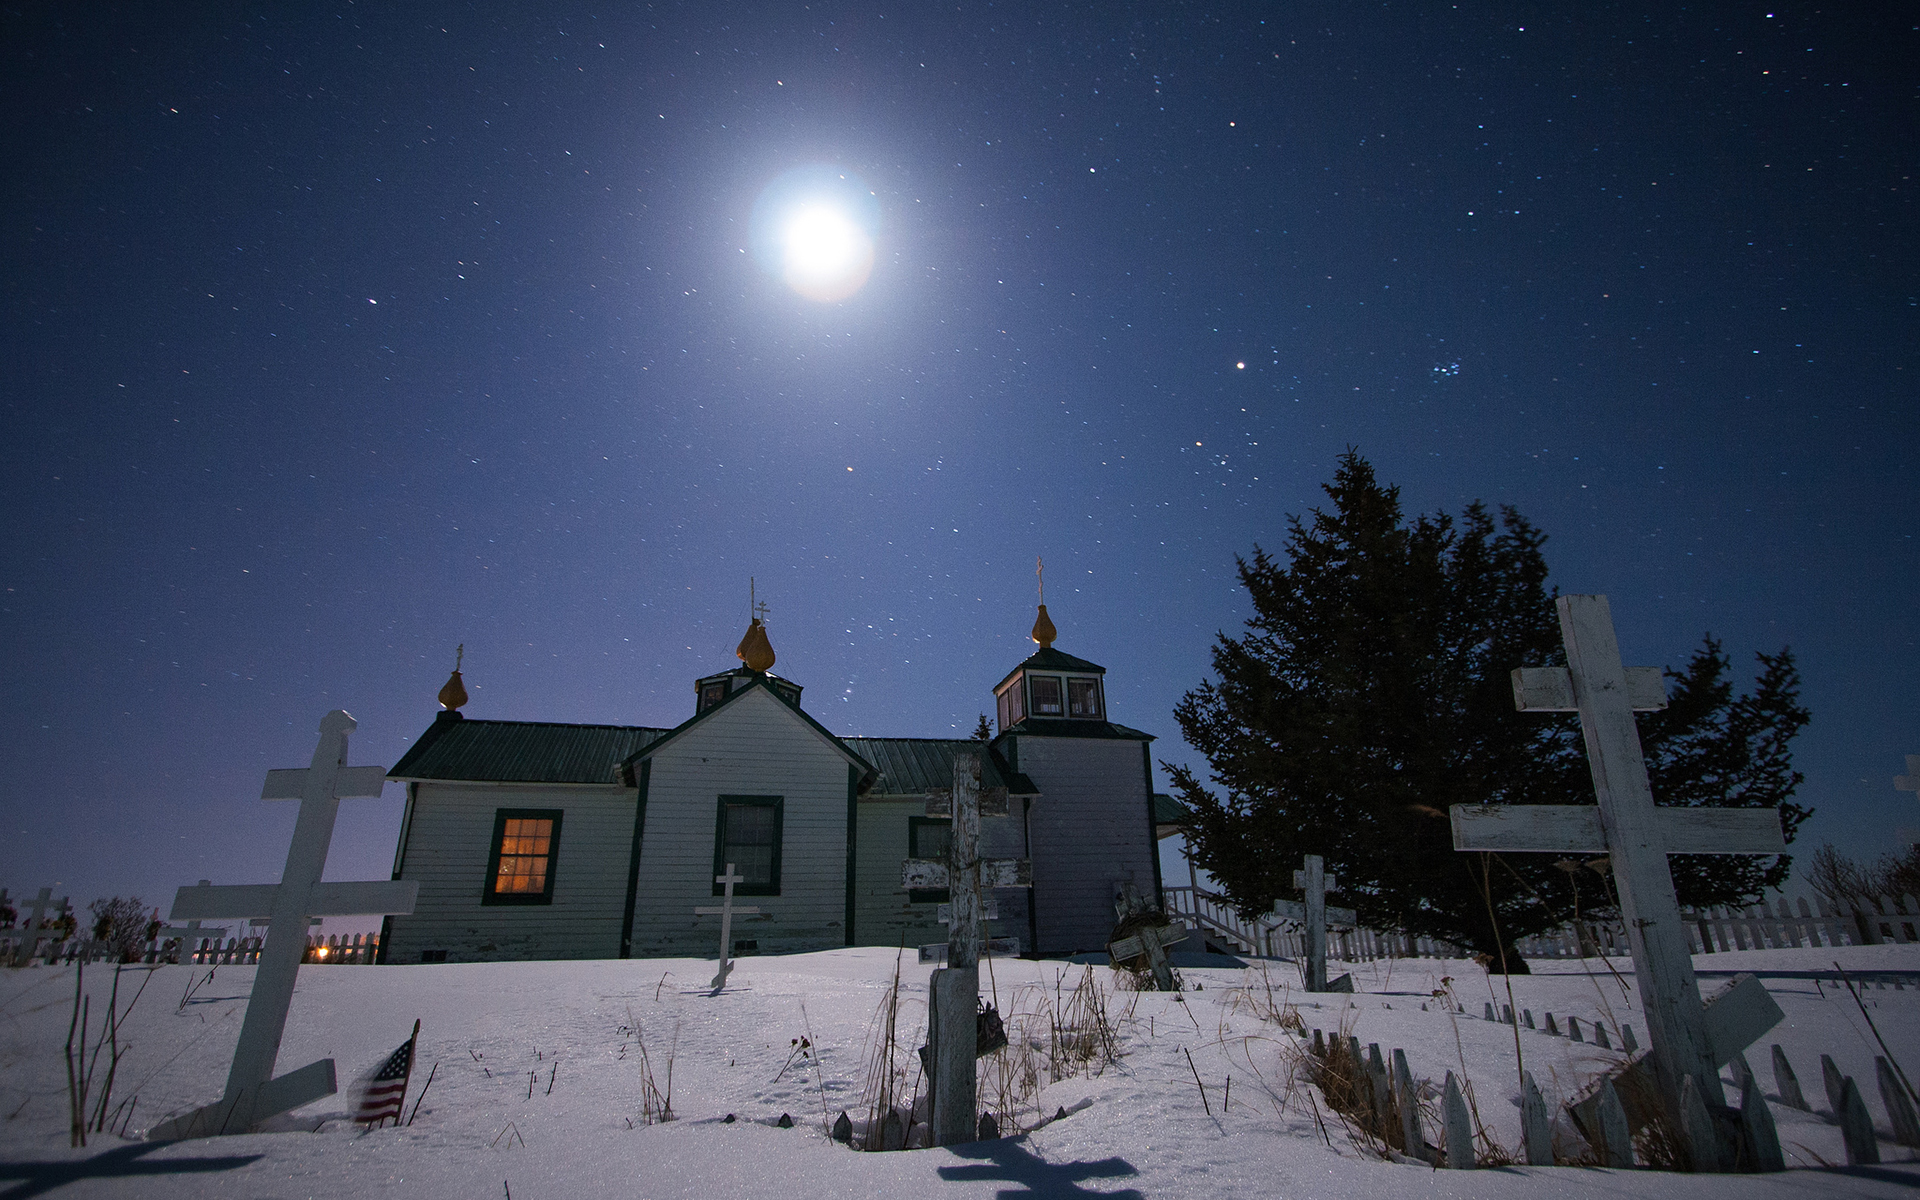 Cemetery Moonlight Stars Night House Snow Winter Cross dark